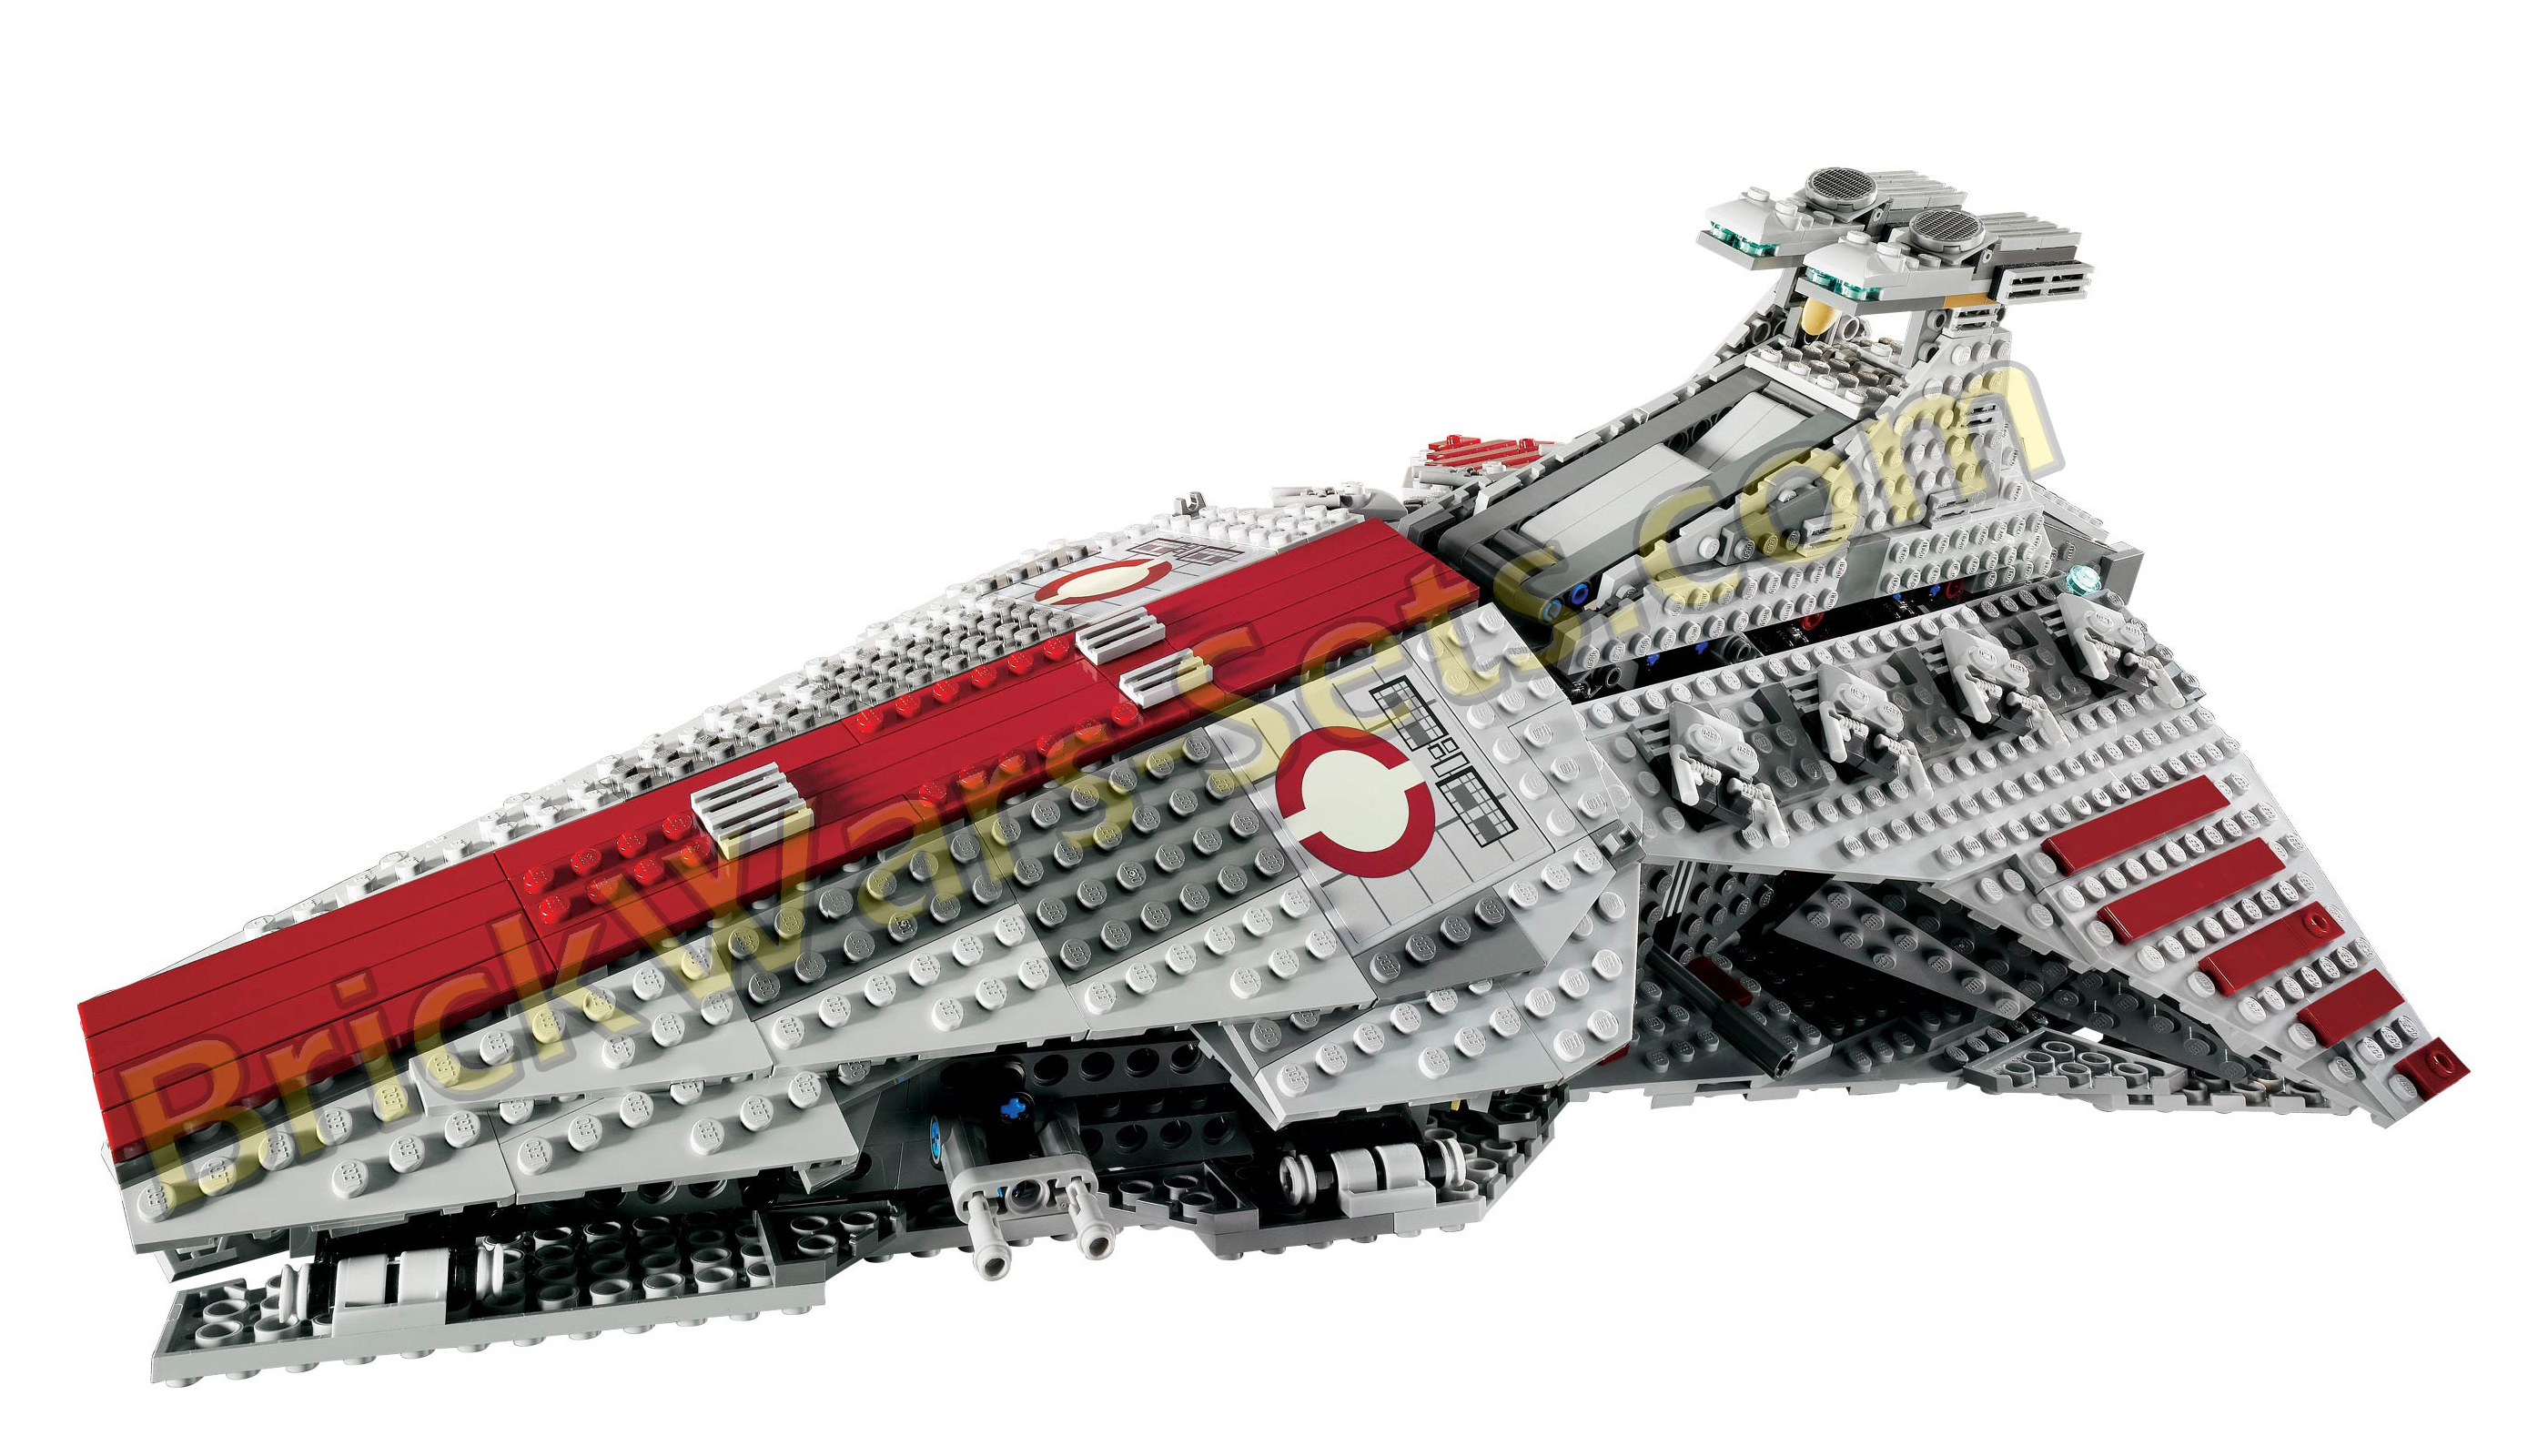 lego star wars republic assault ship instructions